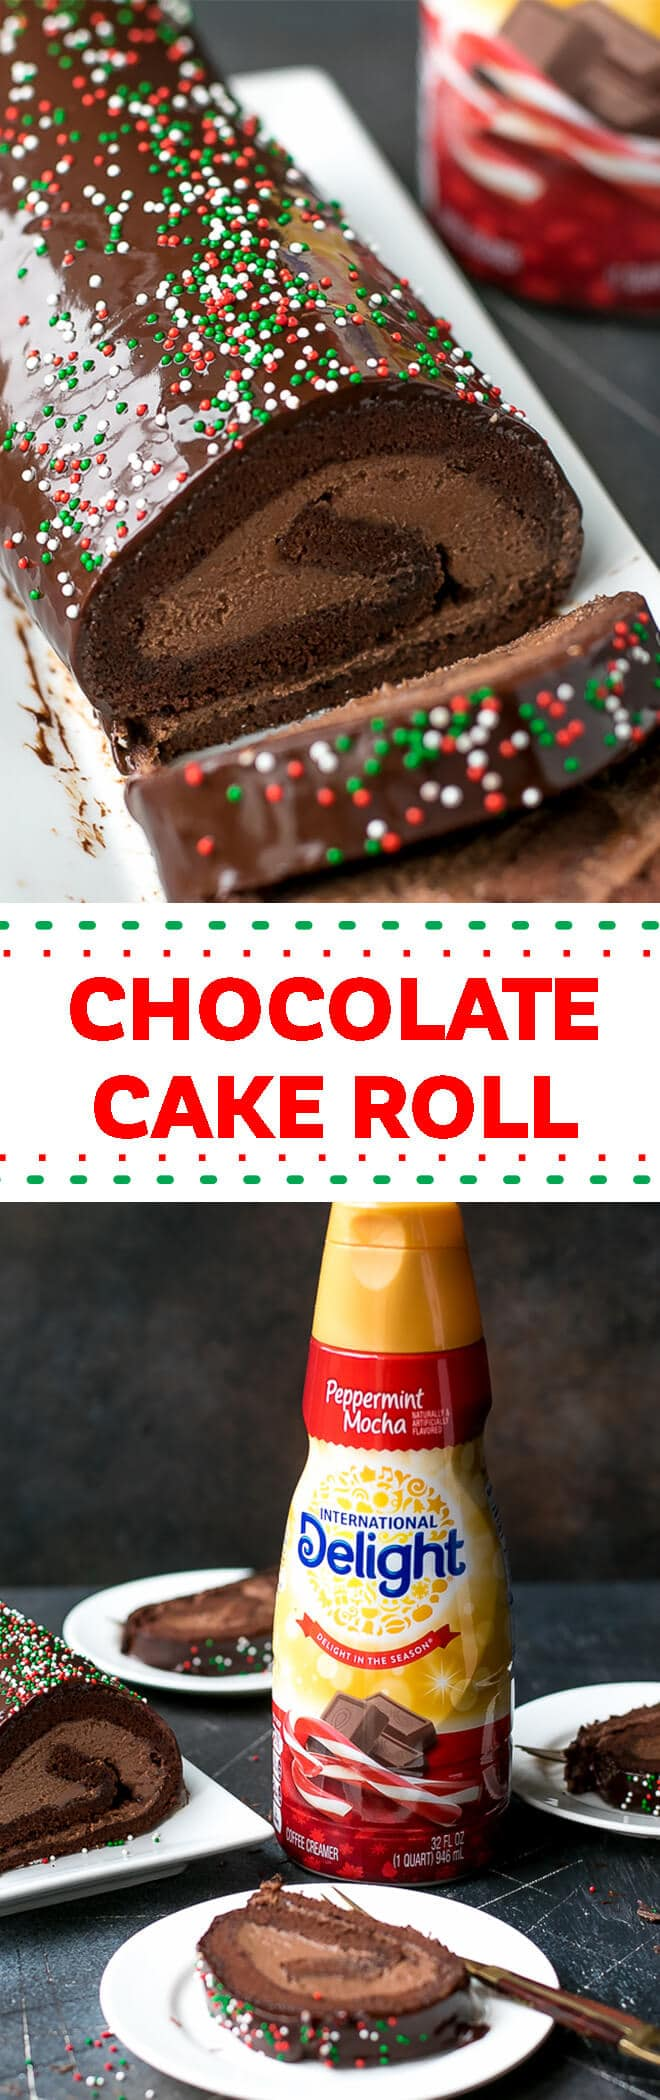 Chocolate Cake Roll With Chocolate Mascarpone Whipped Cream Recipe